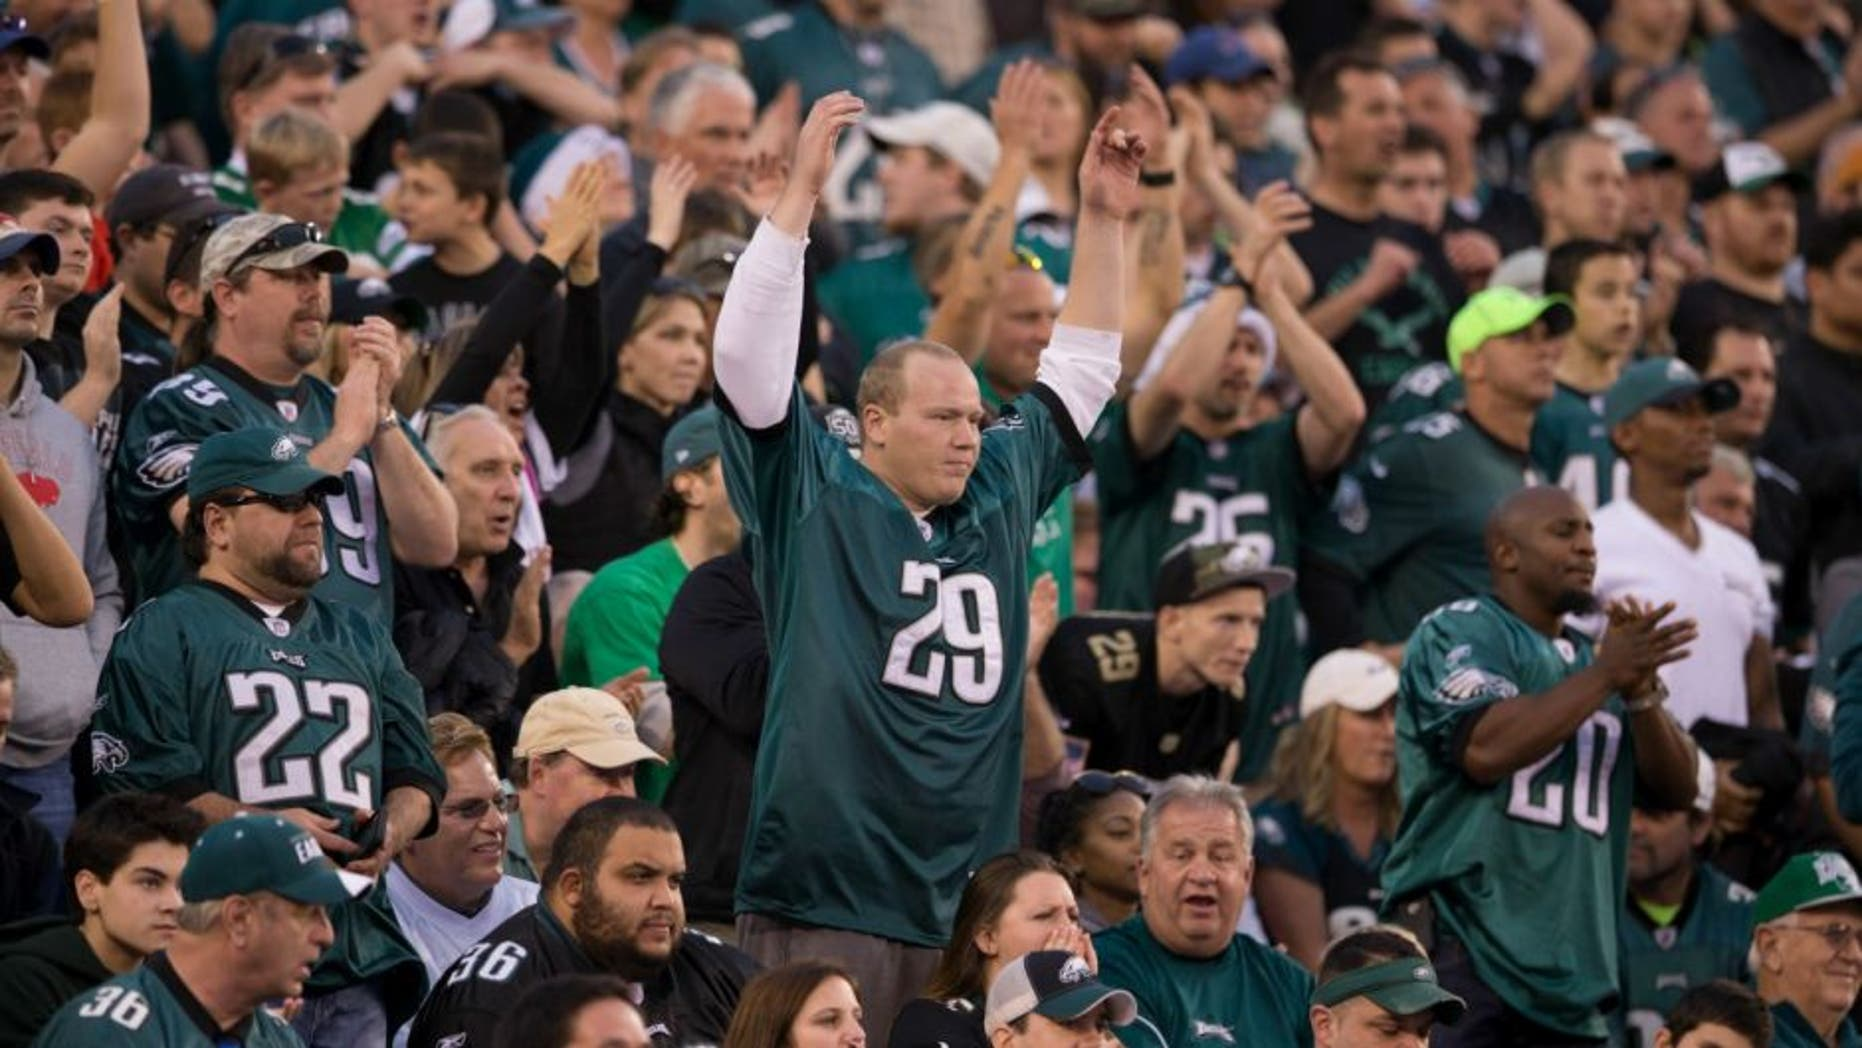 PHILADELPHIA, PA - DECEMBER 13: Philadelphia Eagles fans react during the game against the Buffalo Bills on December 13, 2015 at the Lincoln Financial Field in Philadelphia, Pennsylvania. (Photo by Mitchell Leff/Getty Images)